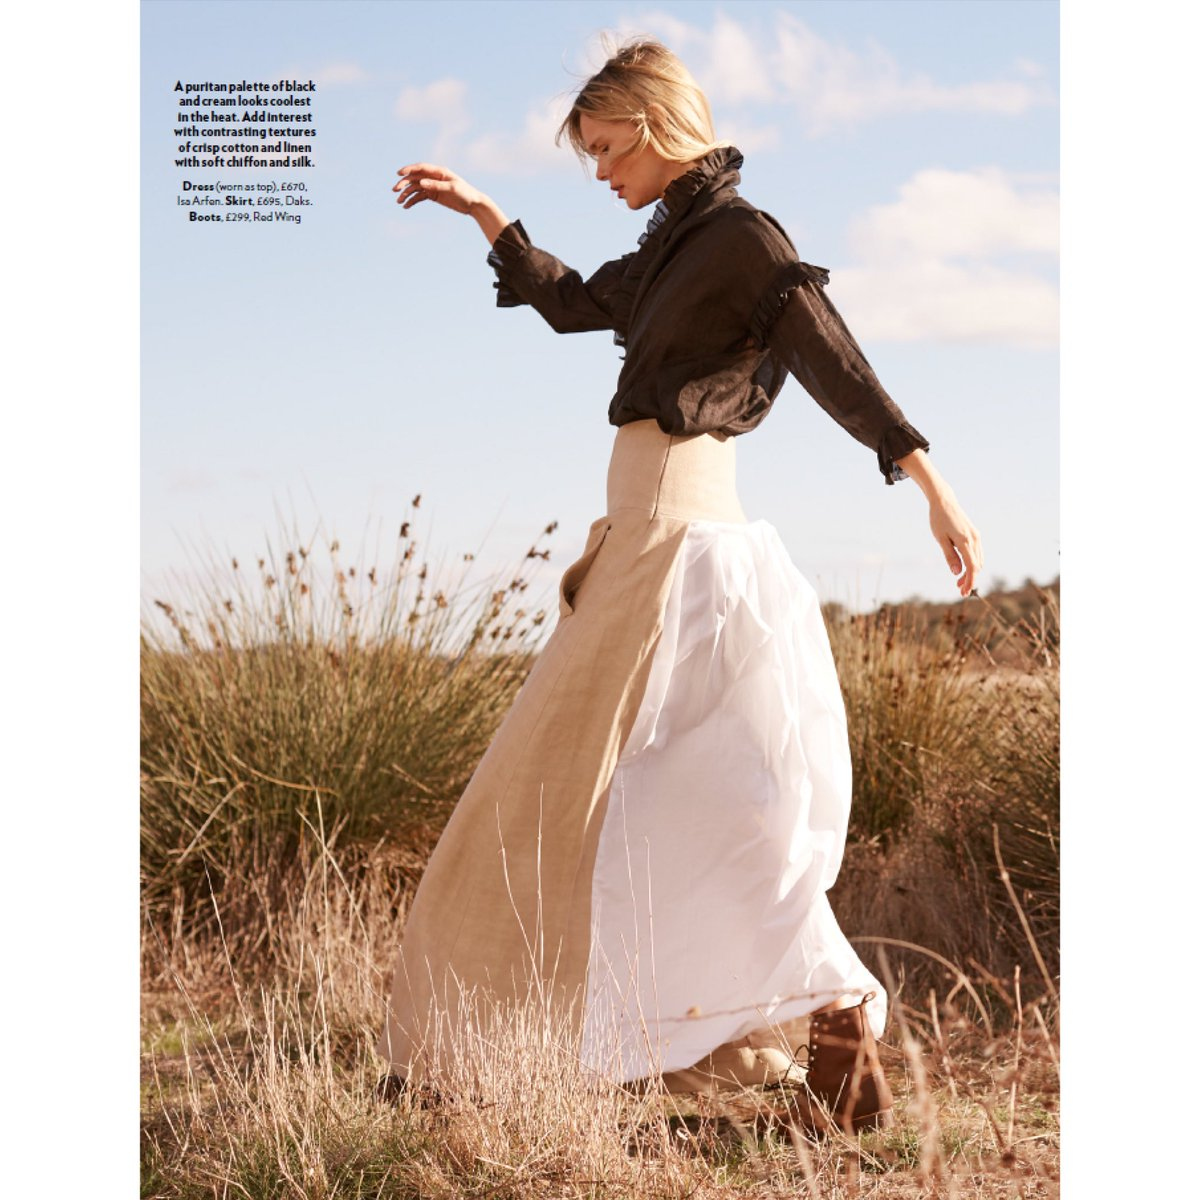 Go West, as seen in this months @redmagazine featuring one of our SS18 show pieces! #DAKSLondon #SS18 https://t.co/8cF6jgMpz4